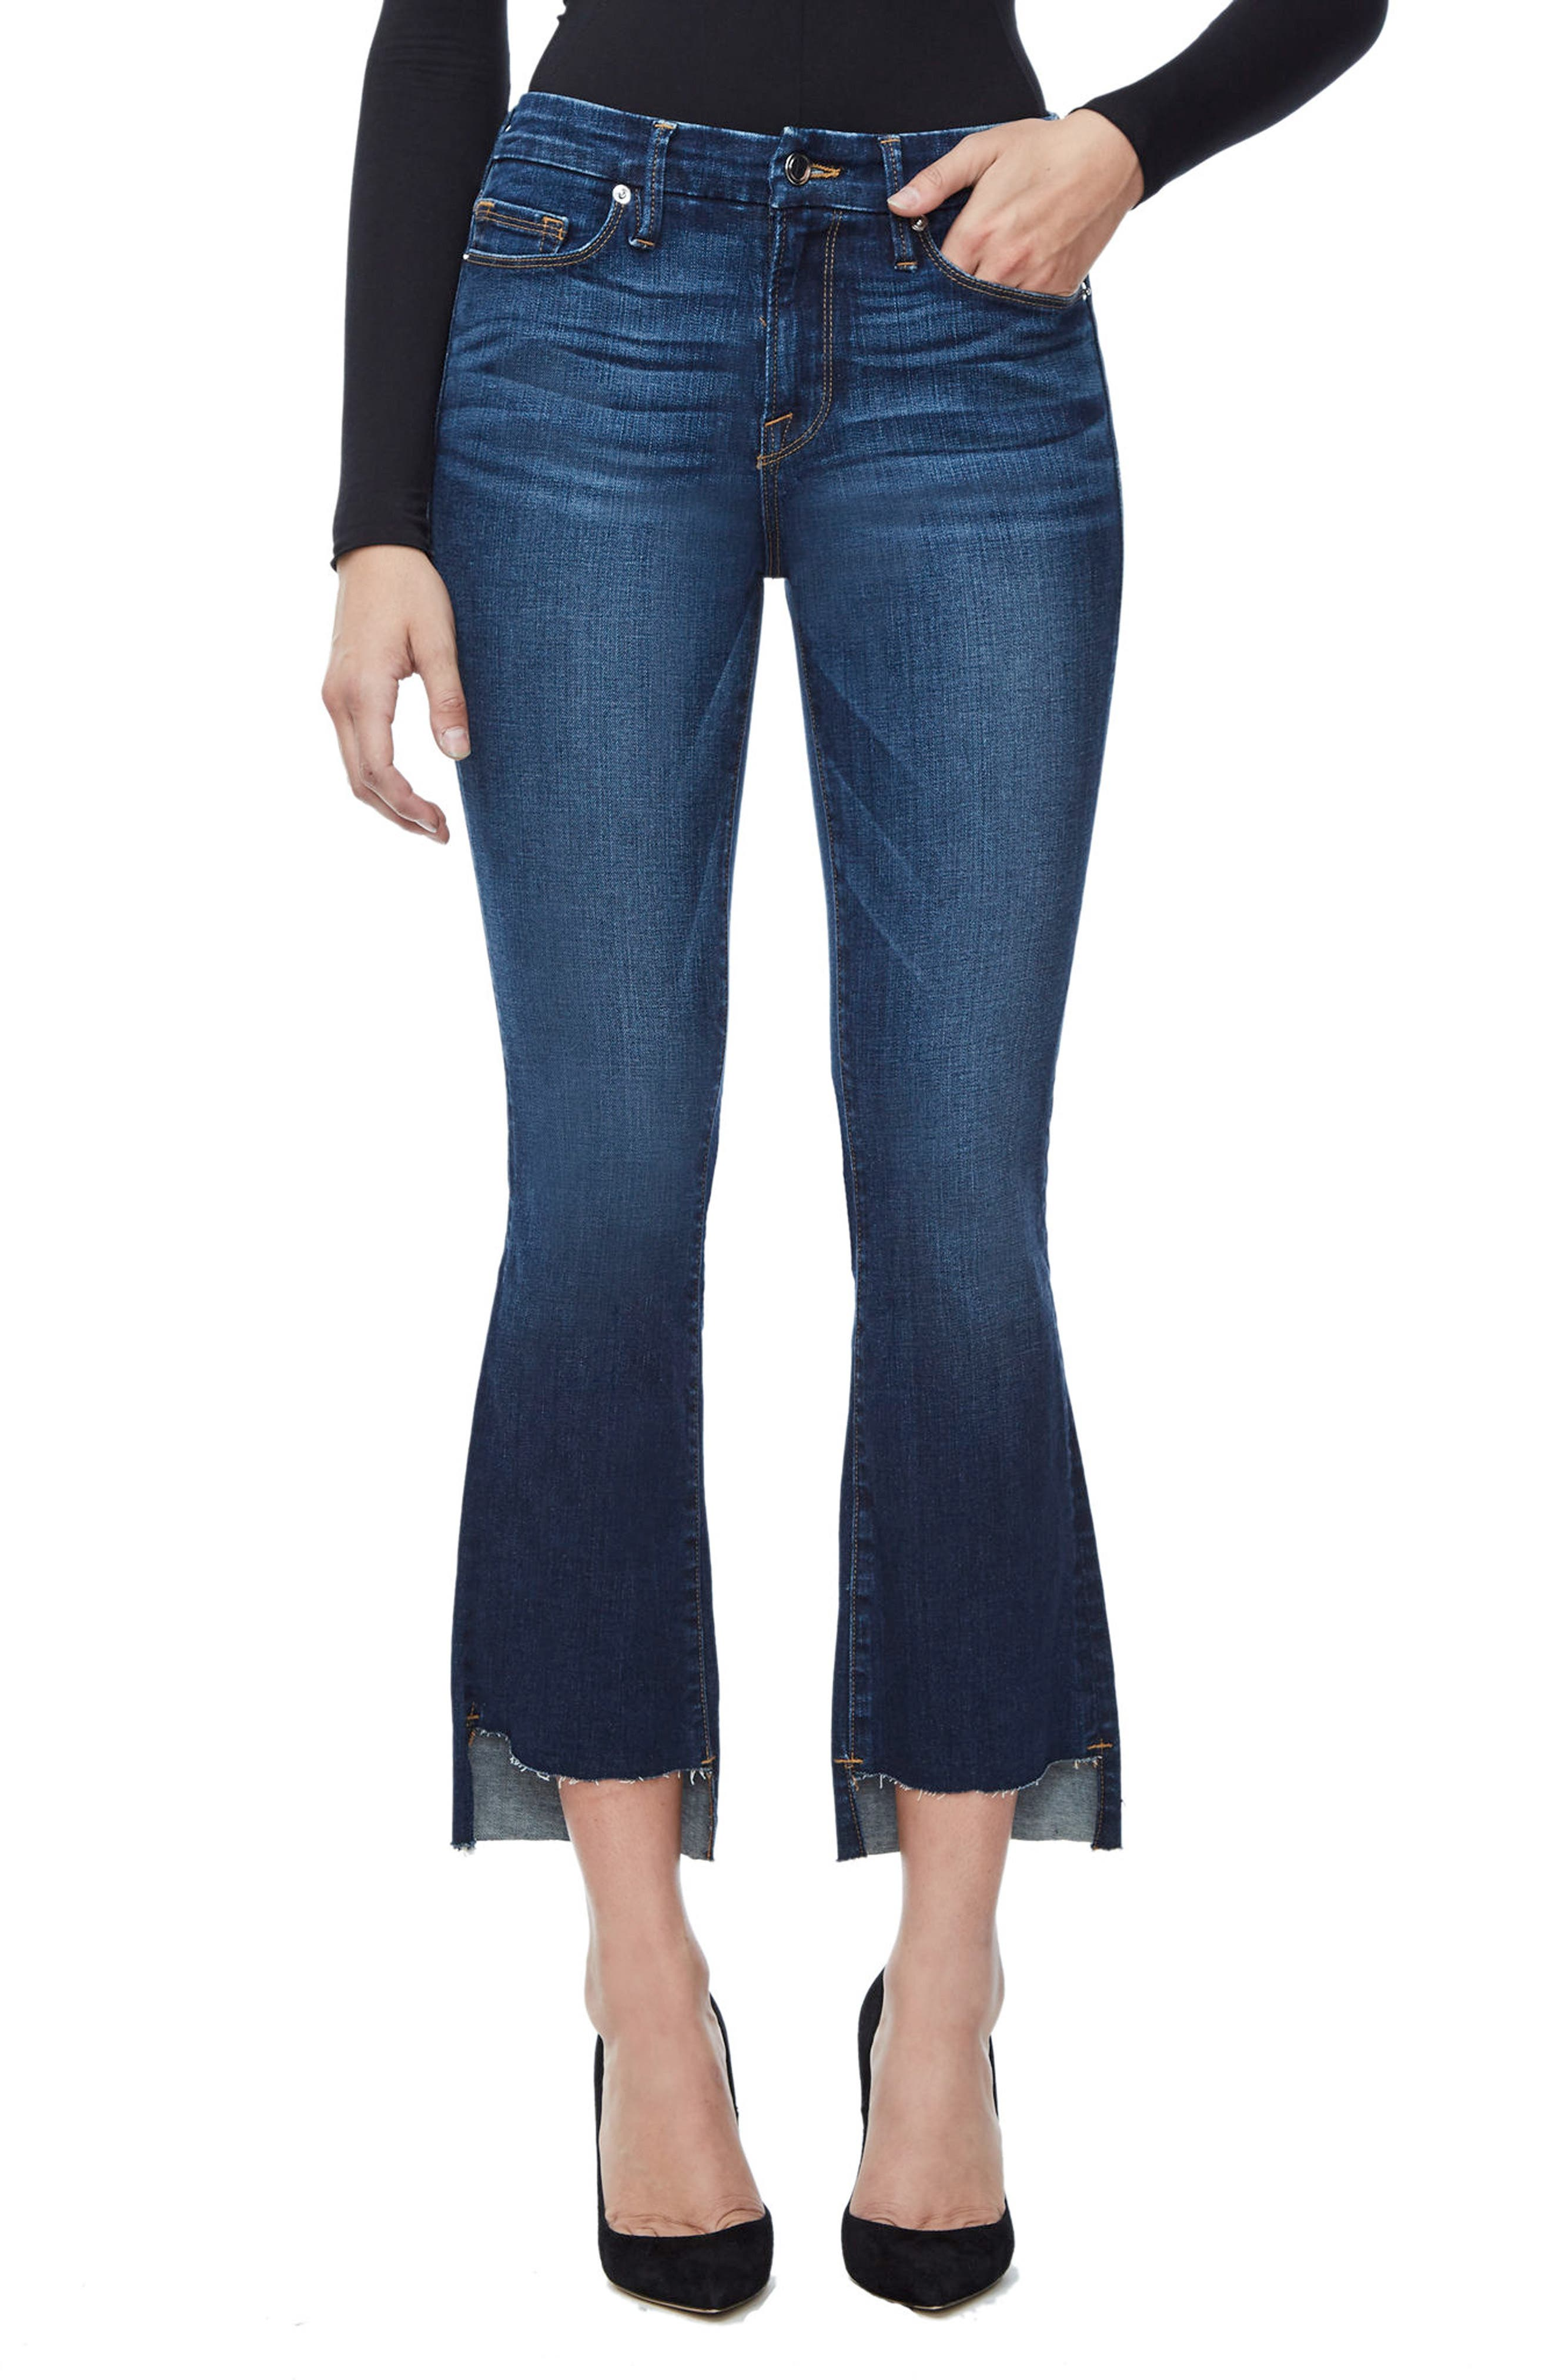 Alternate Image 1 Selected - Good American Good Boot Crop Step Hem Bootcut Jeans (Blue 091) (Extended Sizes)